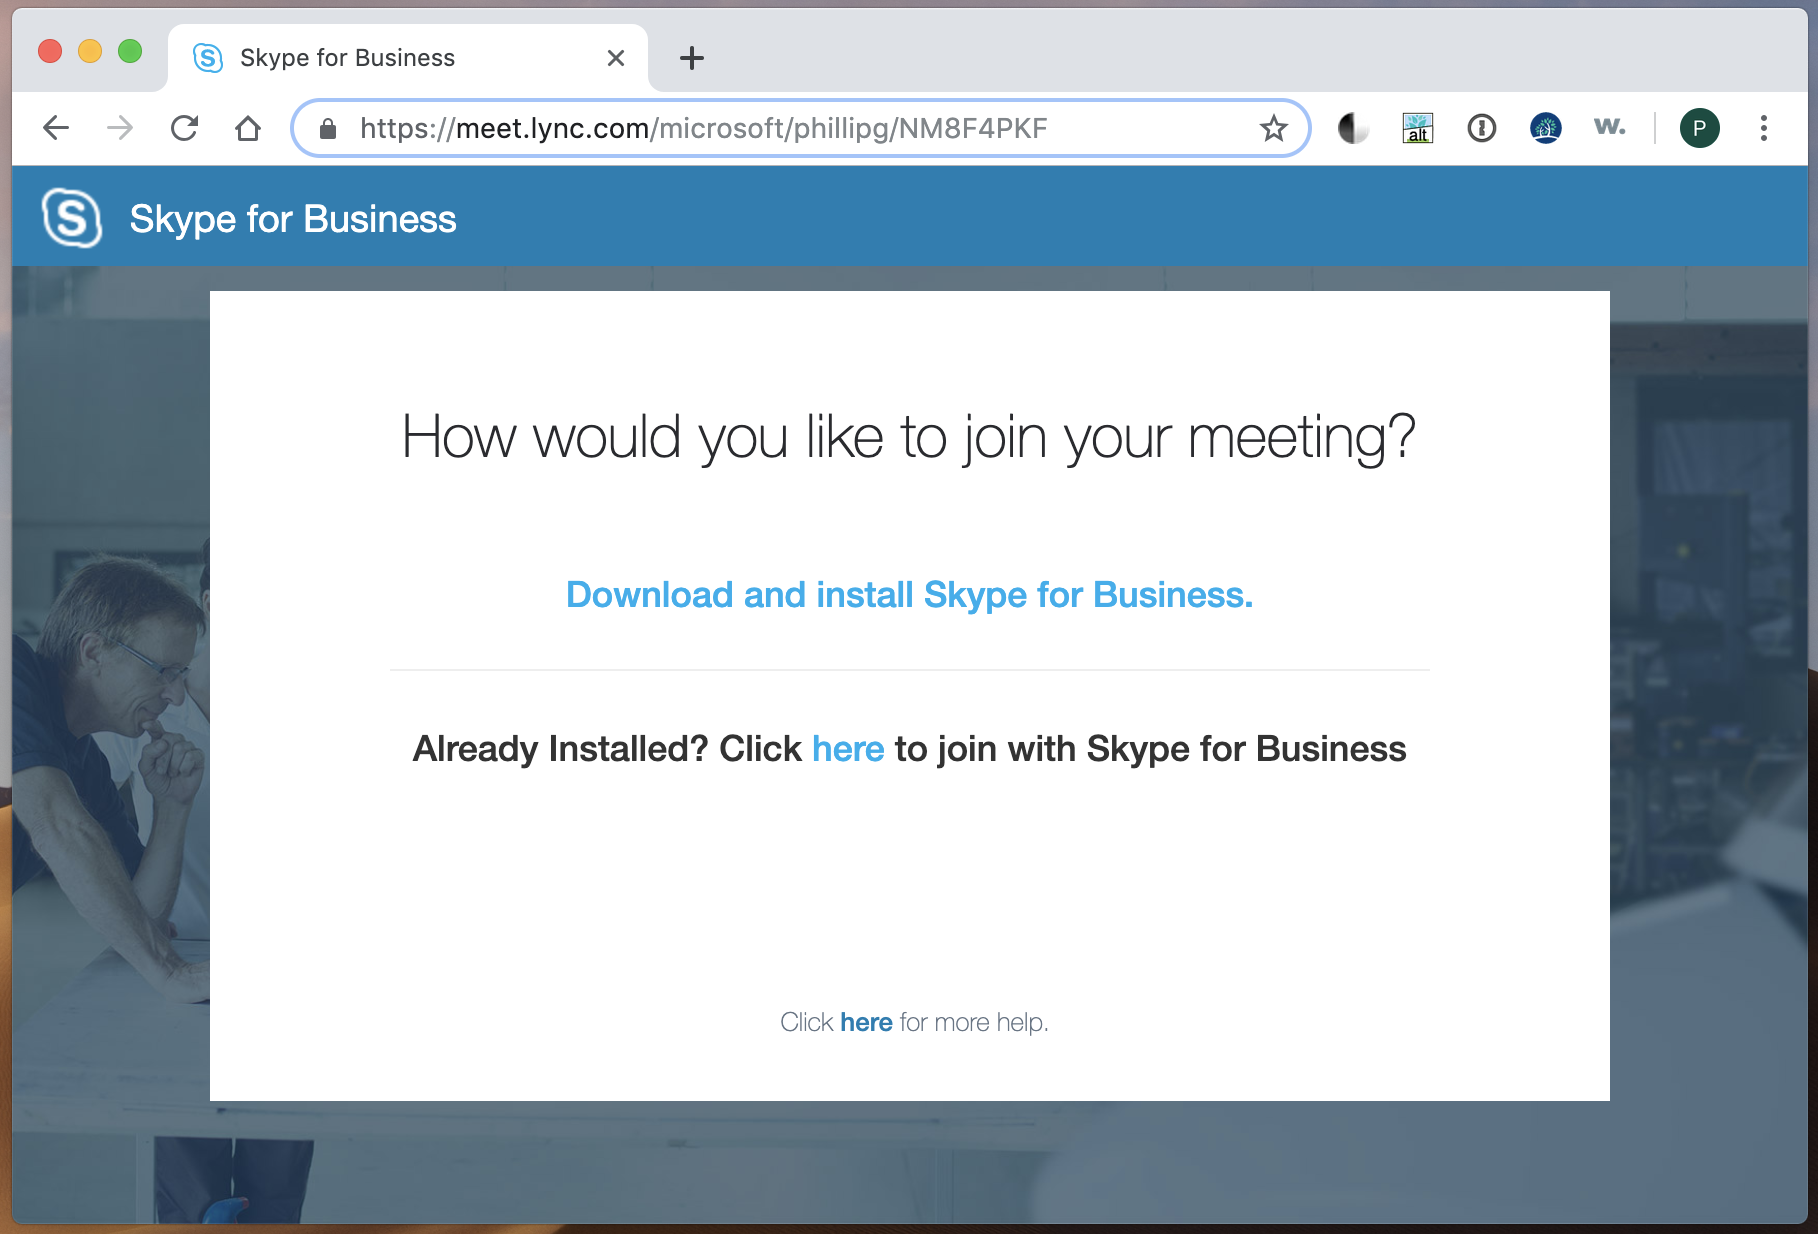 Skype for Business desktop now available as web download app